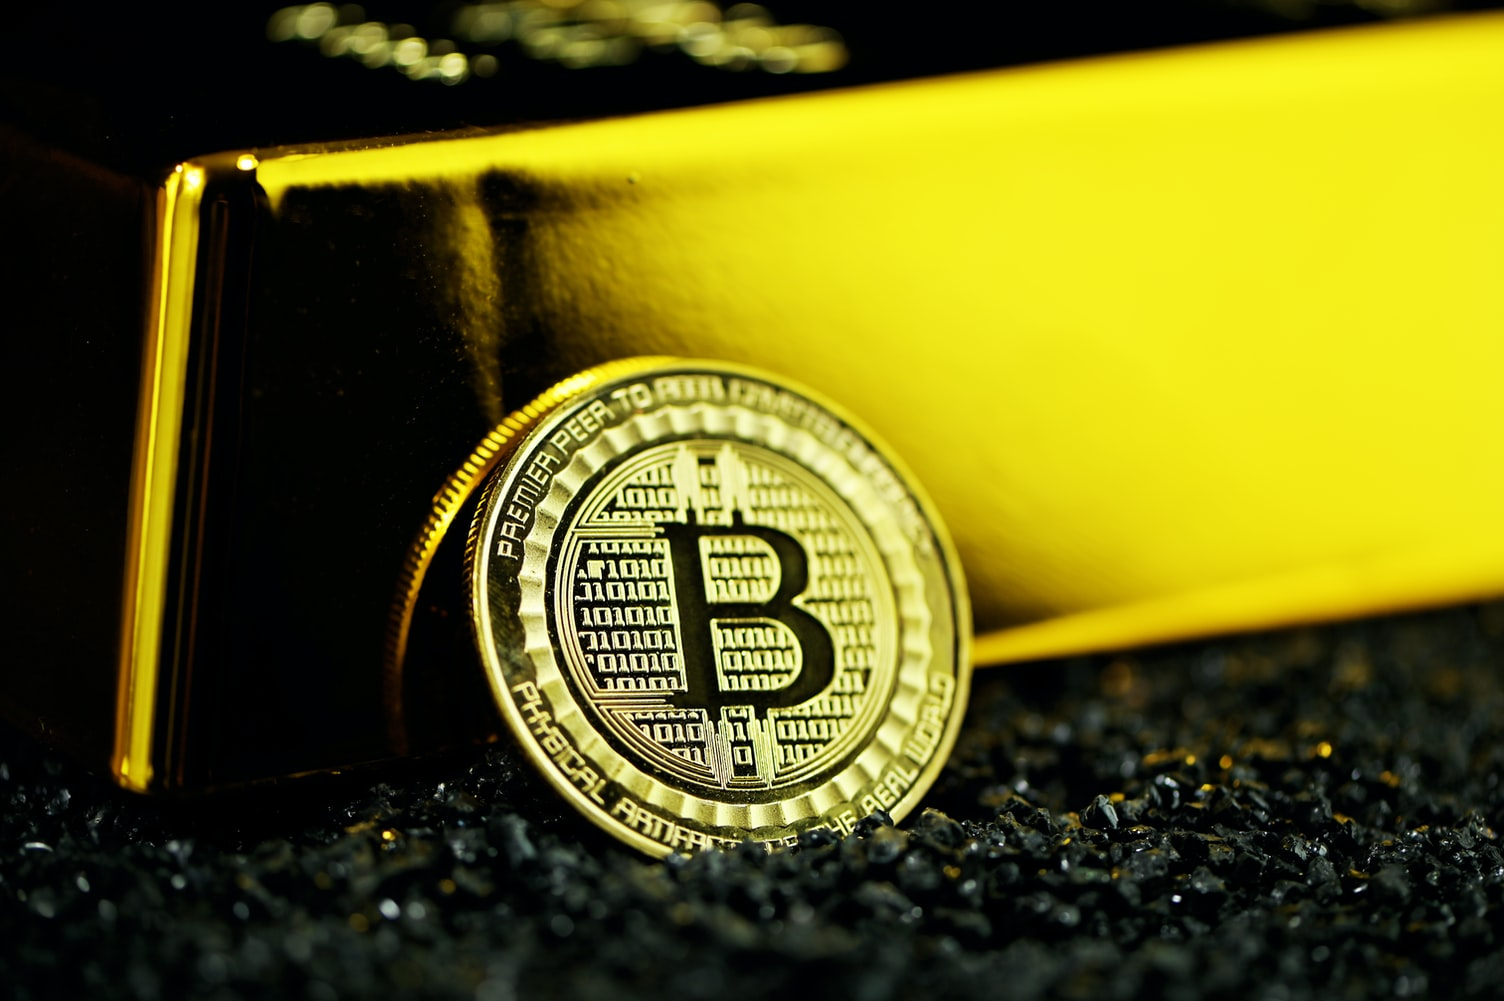 WHAT DOES BITCOIN MEAN AND HOW TO DO TRADING WITH BITCOINS